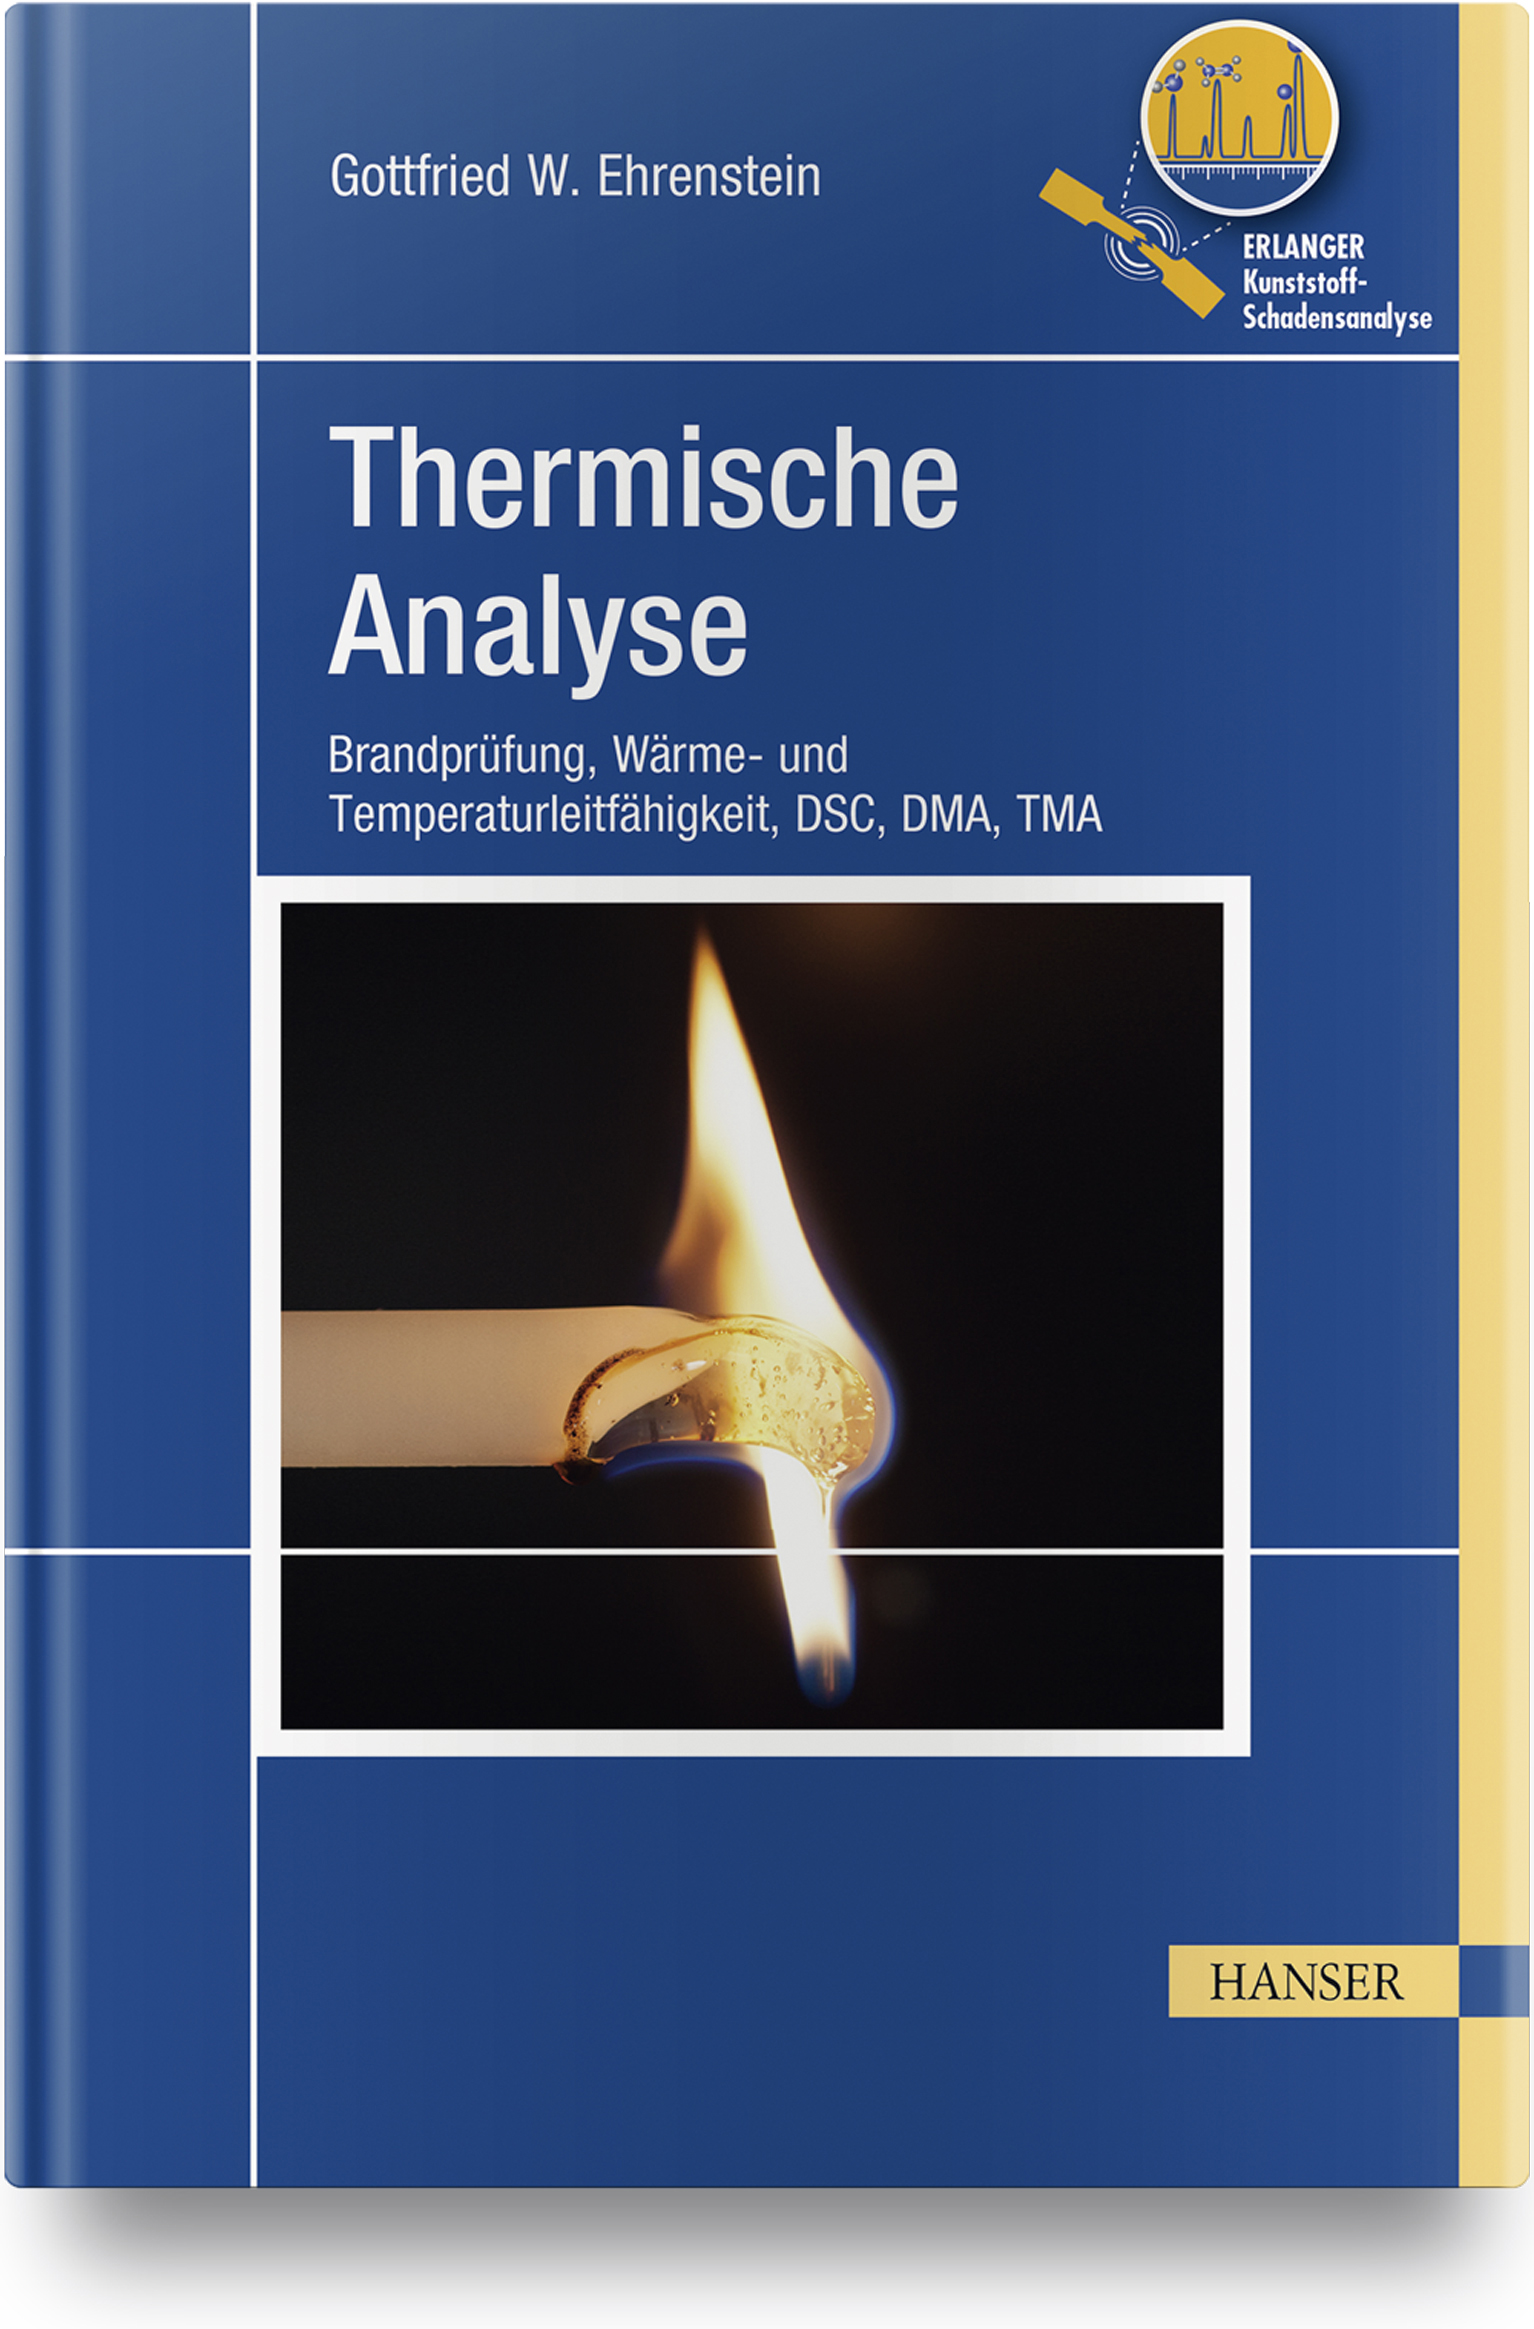 Ehrenstein, Thermische Analyse, 978-3-446-46258-8